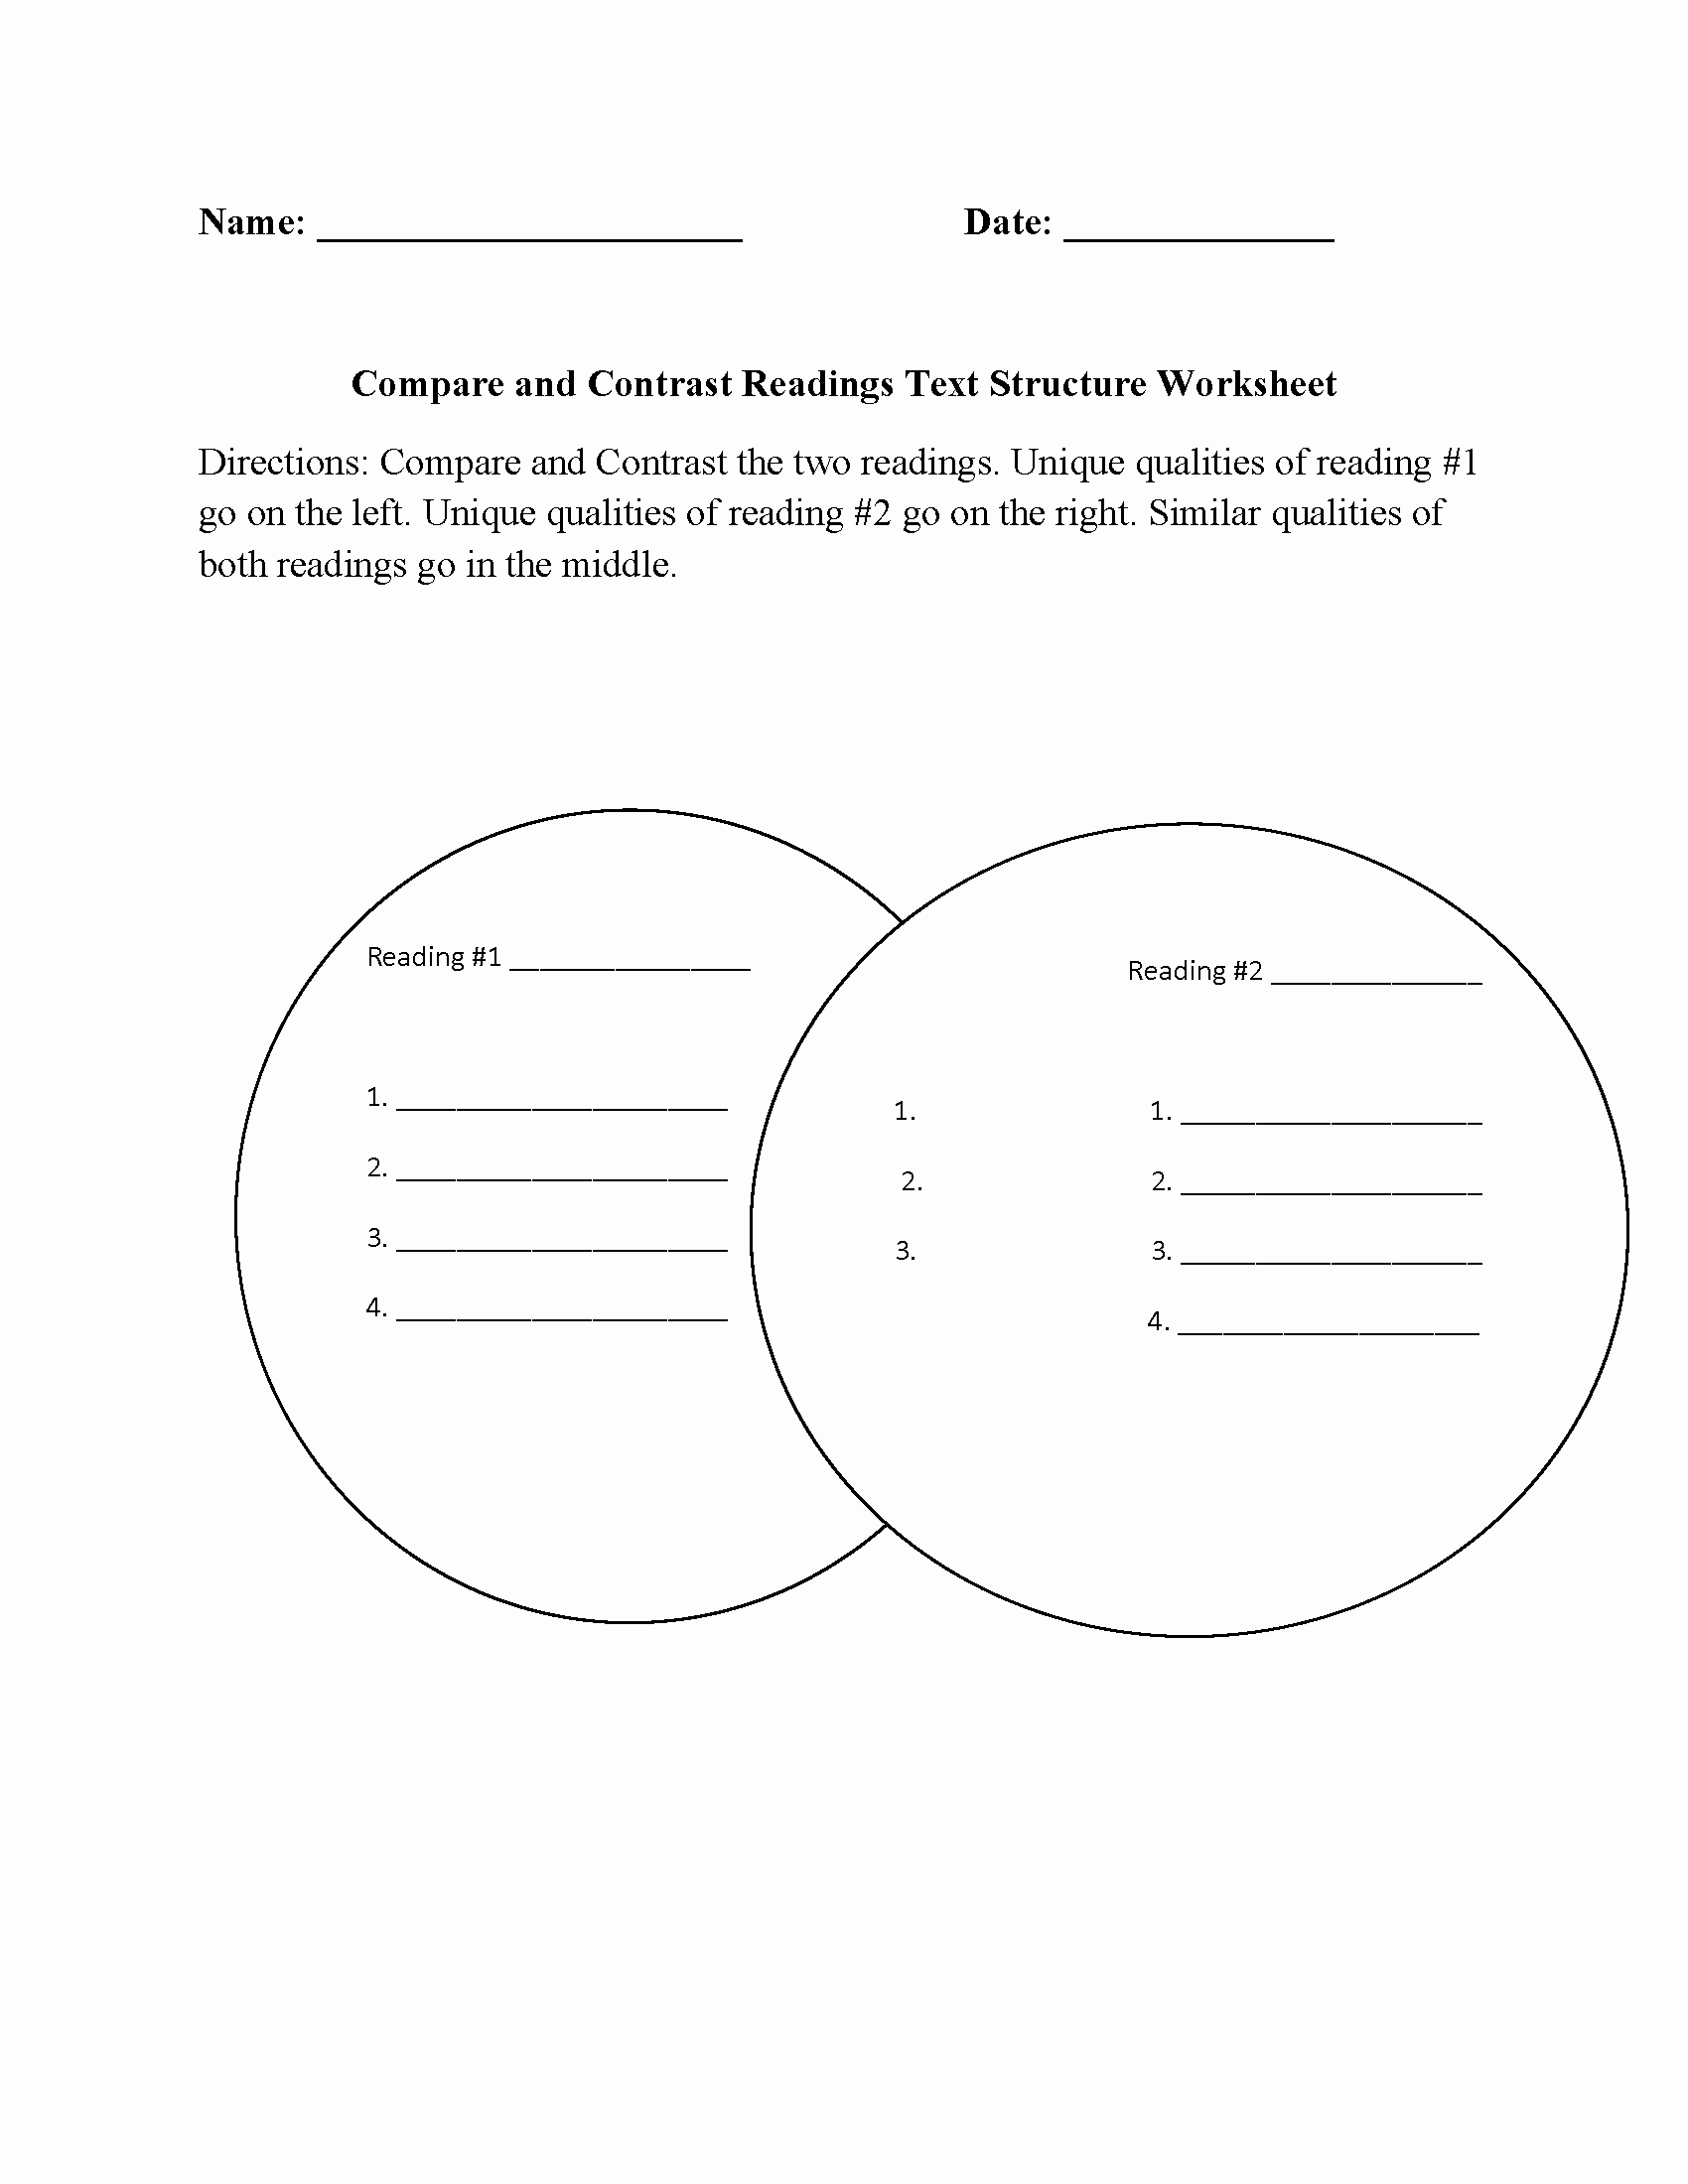 Text Structure Worksheet Pdf Awesome Pare and Contrast Readings Text Structure Worksheet